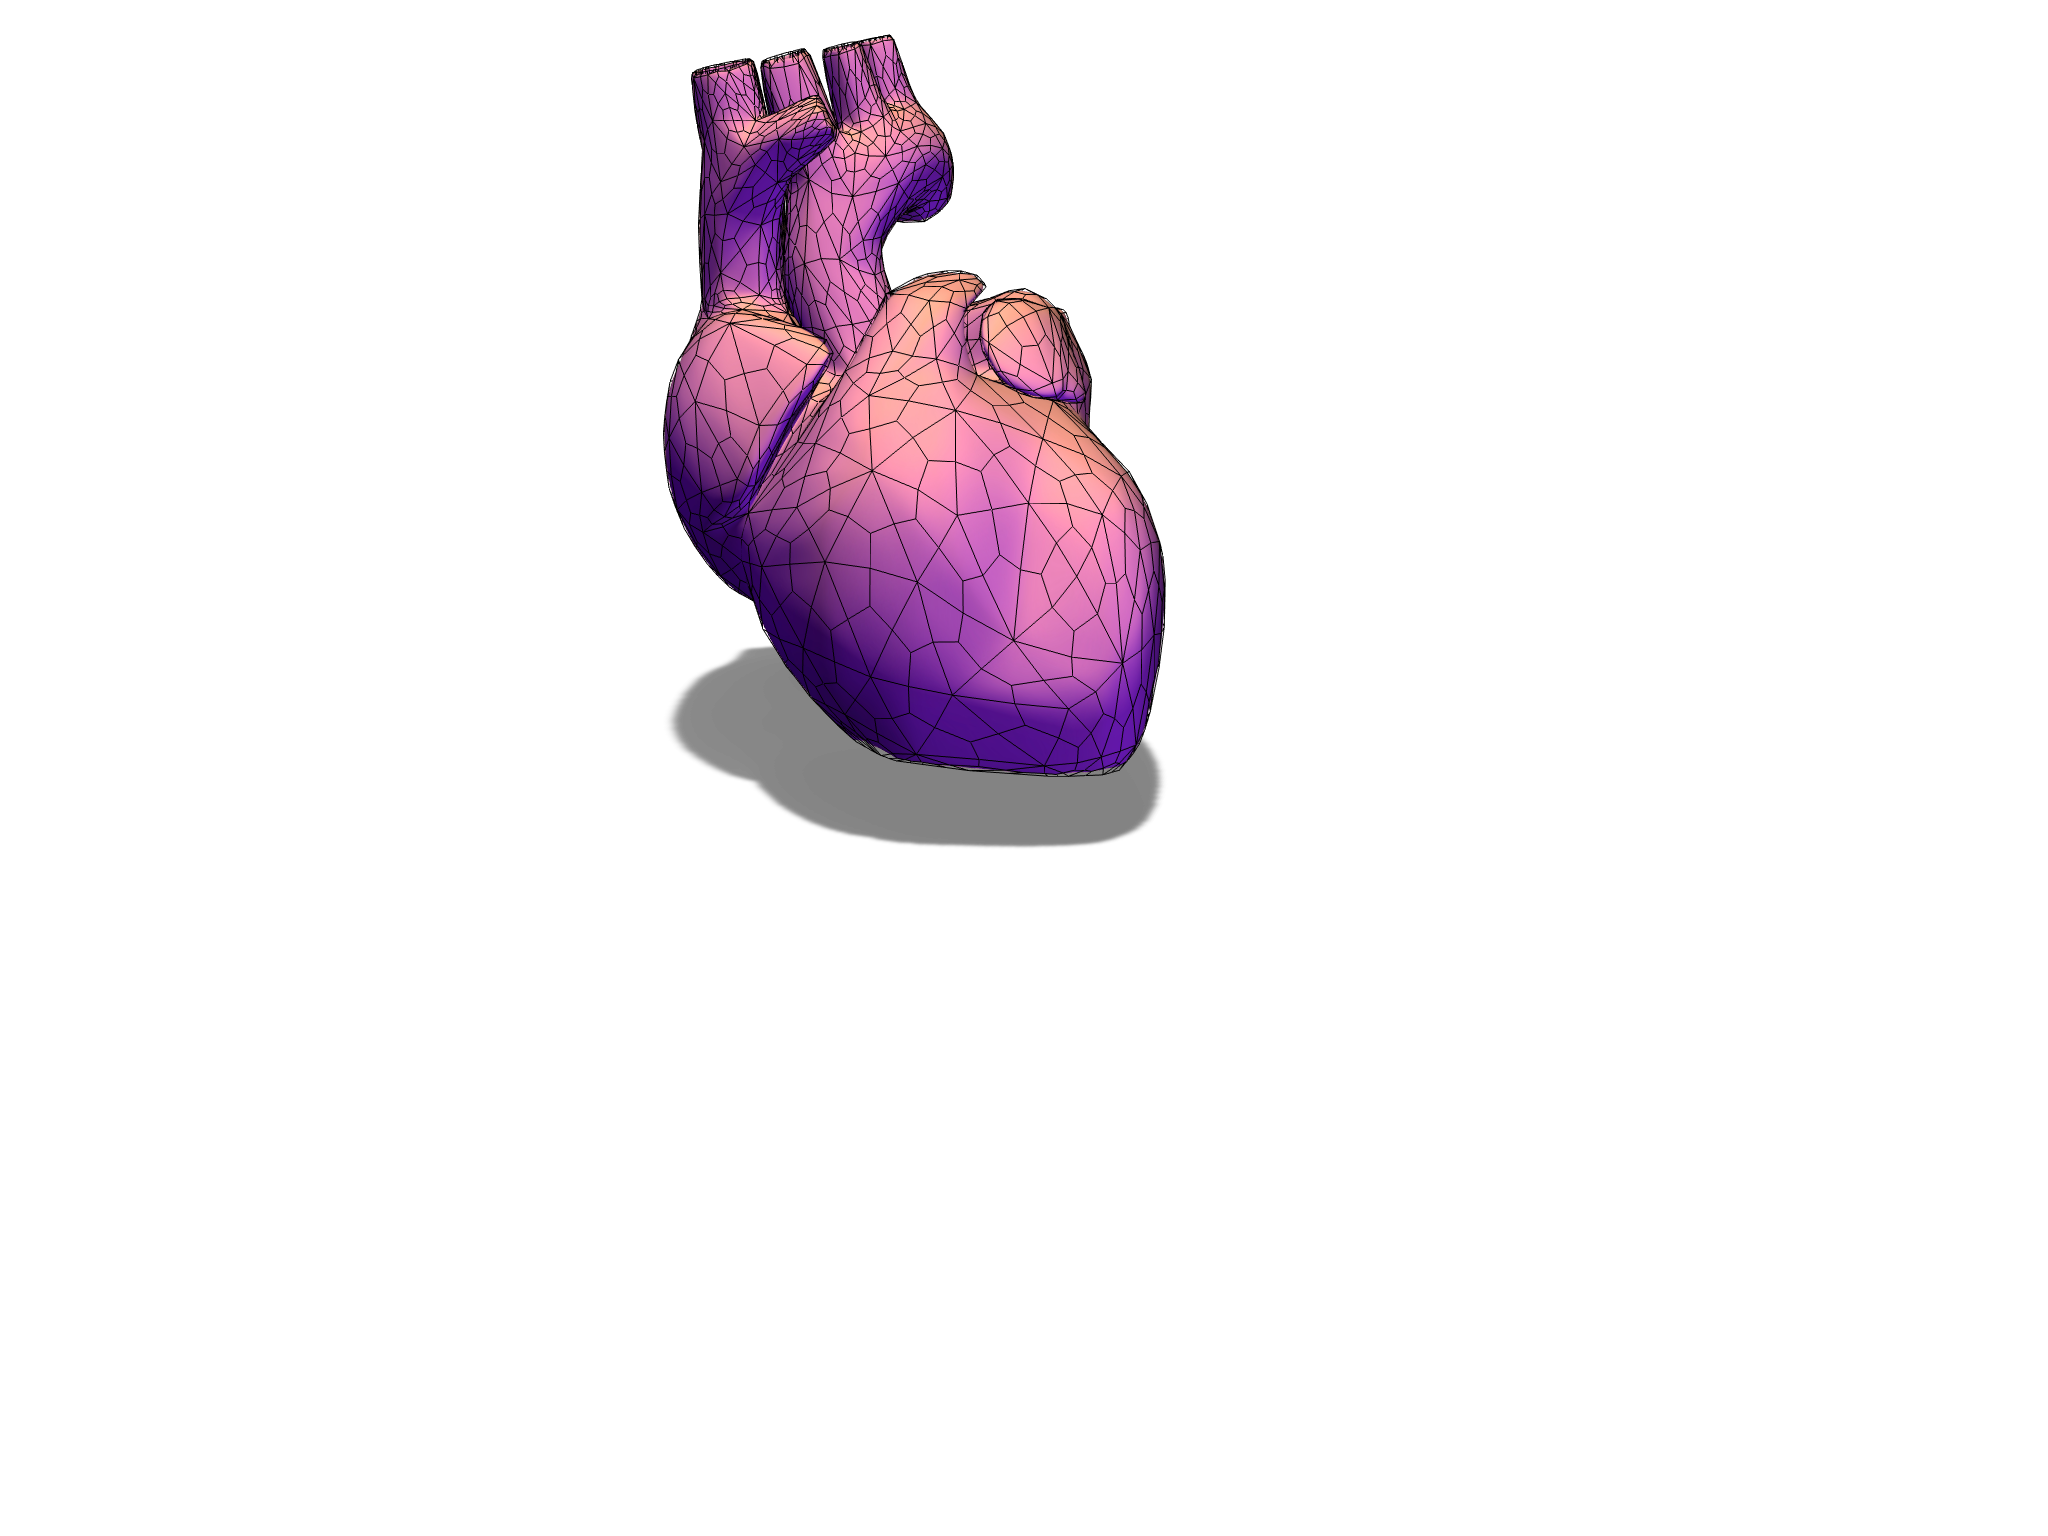 heart 3D - 3D design by dbooski Jan 23, 2018